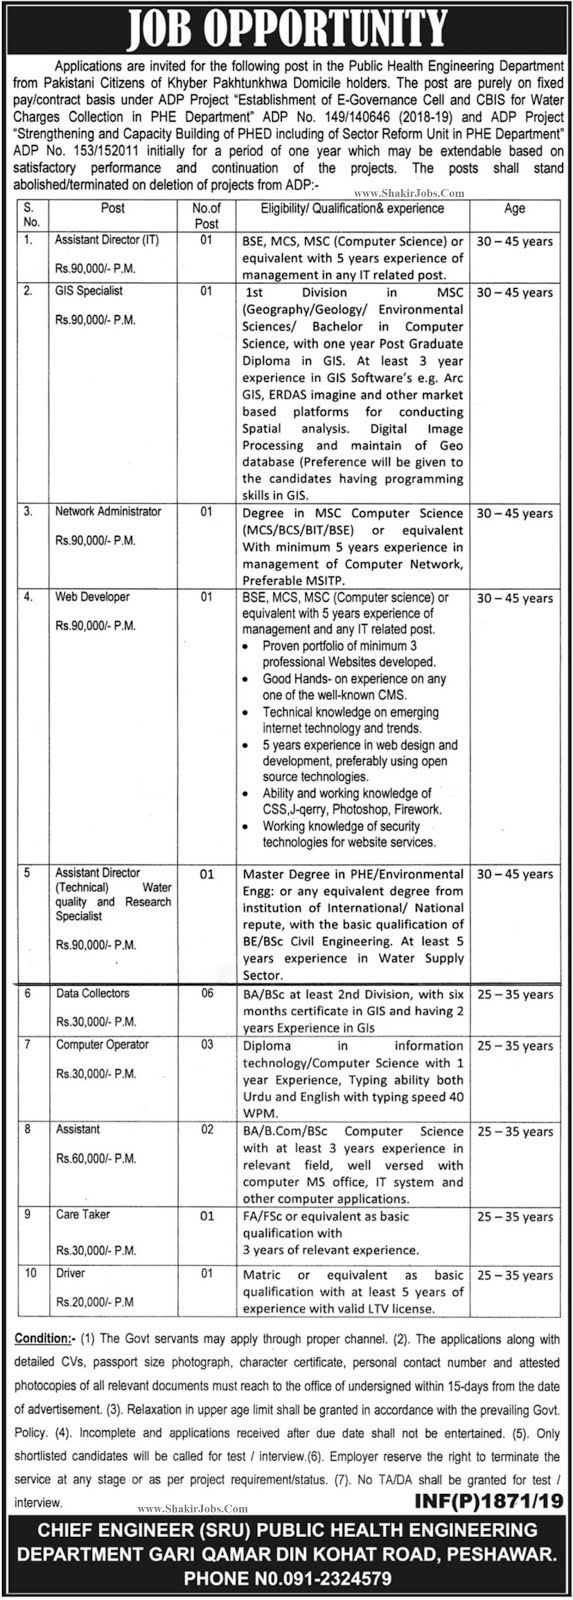 public health engineering department jobs 2019,public health engineering,government jobs,public health engineering department,govt jobs,public health engineering department kpk jobs 2019,jobs in public health engineering department,public health engineering department assam,jobs in public health engineering department in quetta,public health engineering department (phed)